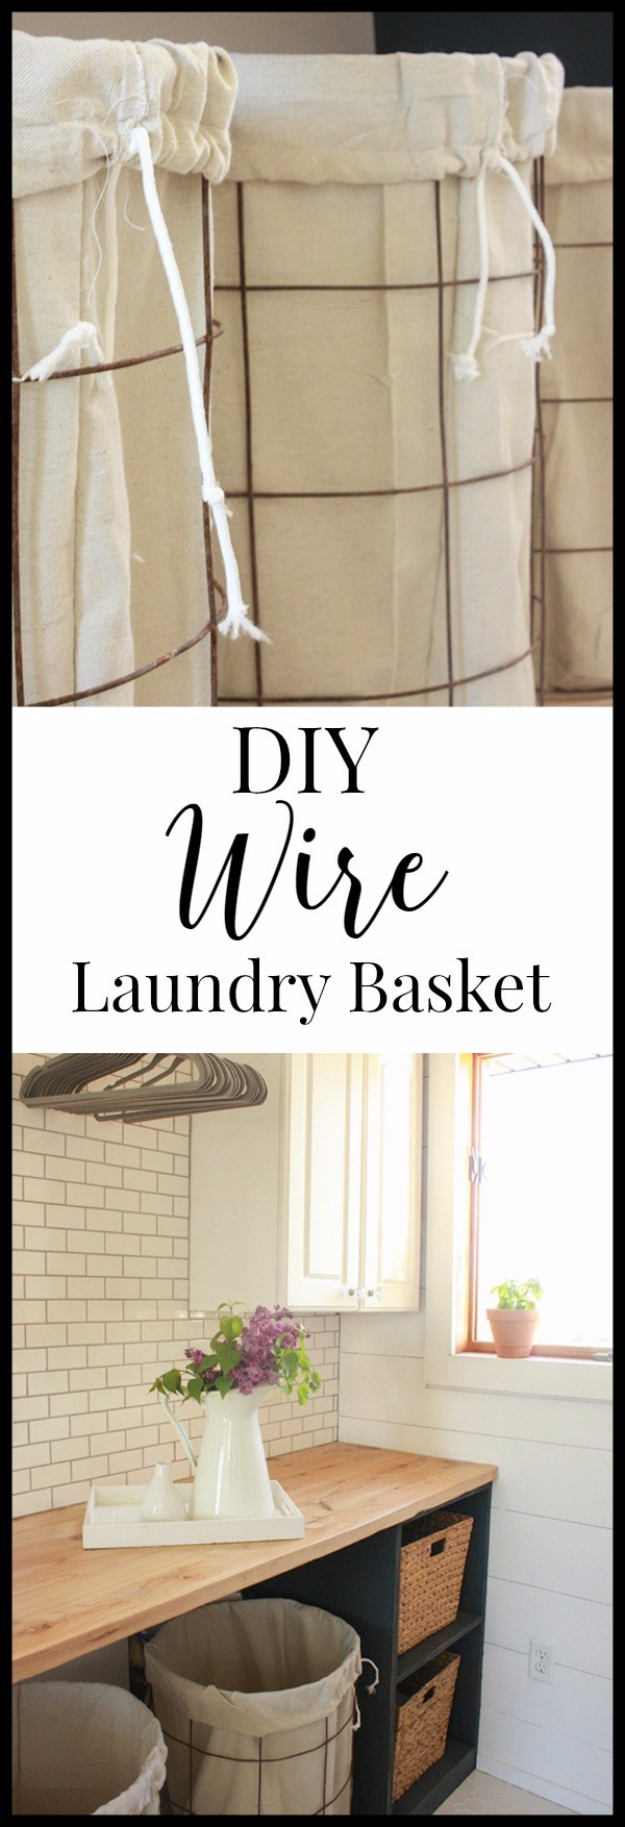 Creative Crafts Made With Baskets - DIY Wire Laundry Baskets - DIY Storage and Organizing Ideas, Gift Basket Ideas, Best DIY Christmas Presents and Holiday Gifts, Room and Home Decor with Step by Step Tutorials - Easy DIY Ideas and Dollar Store Crafts #crafts #diy